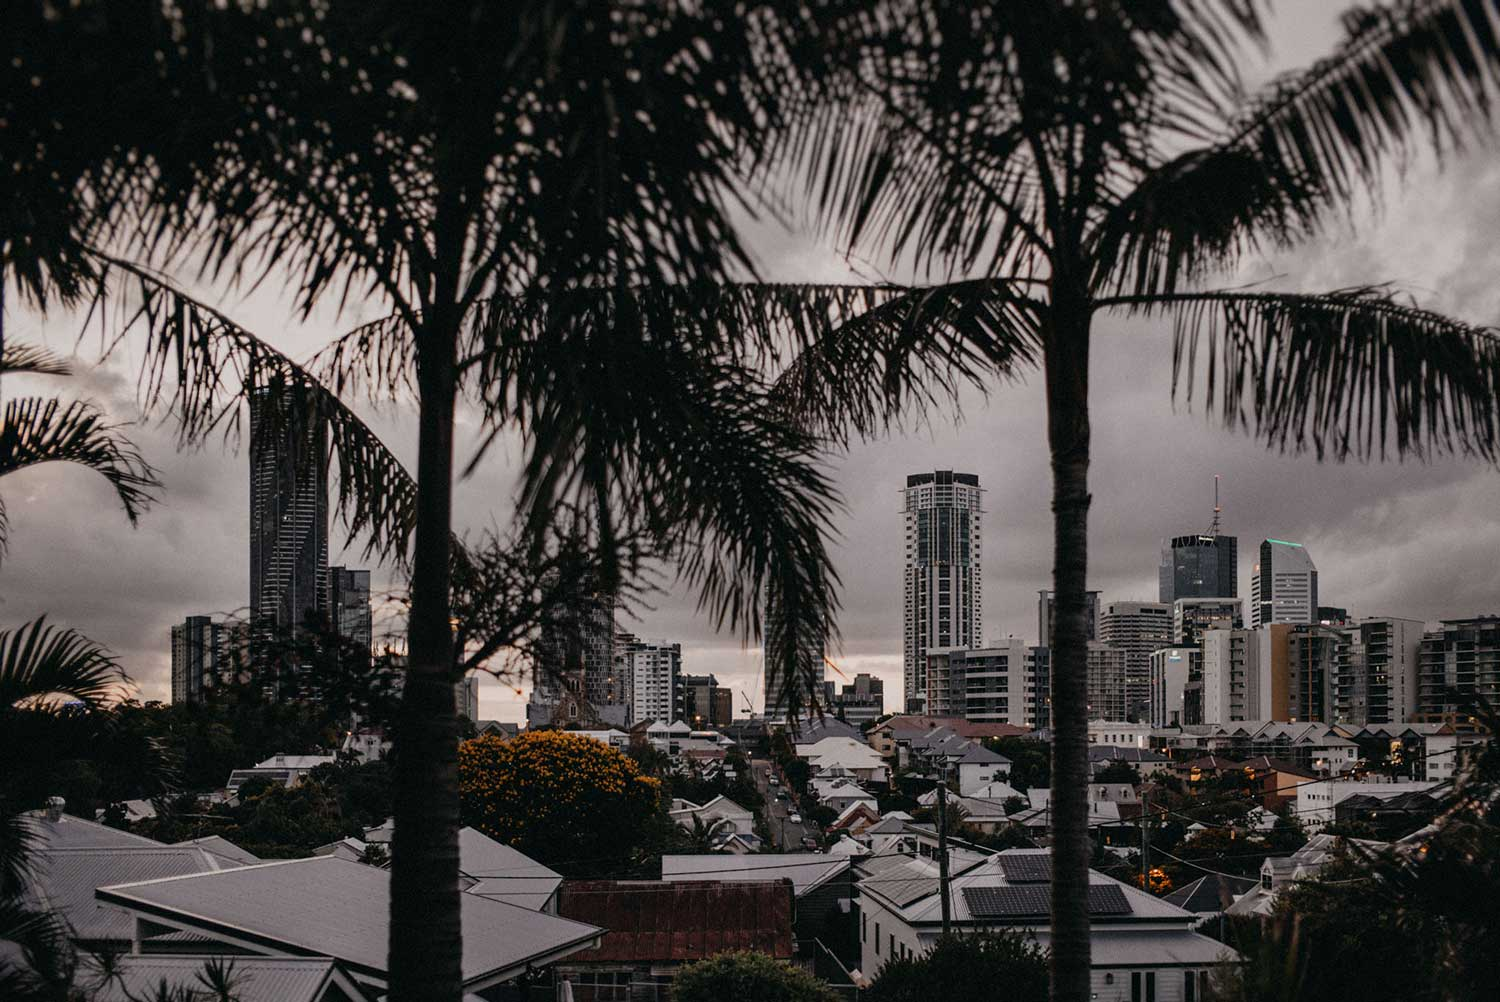 View of Brisbane city, Australia through the palm trees from the window of apartment at sunset